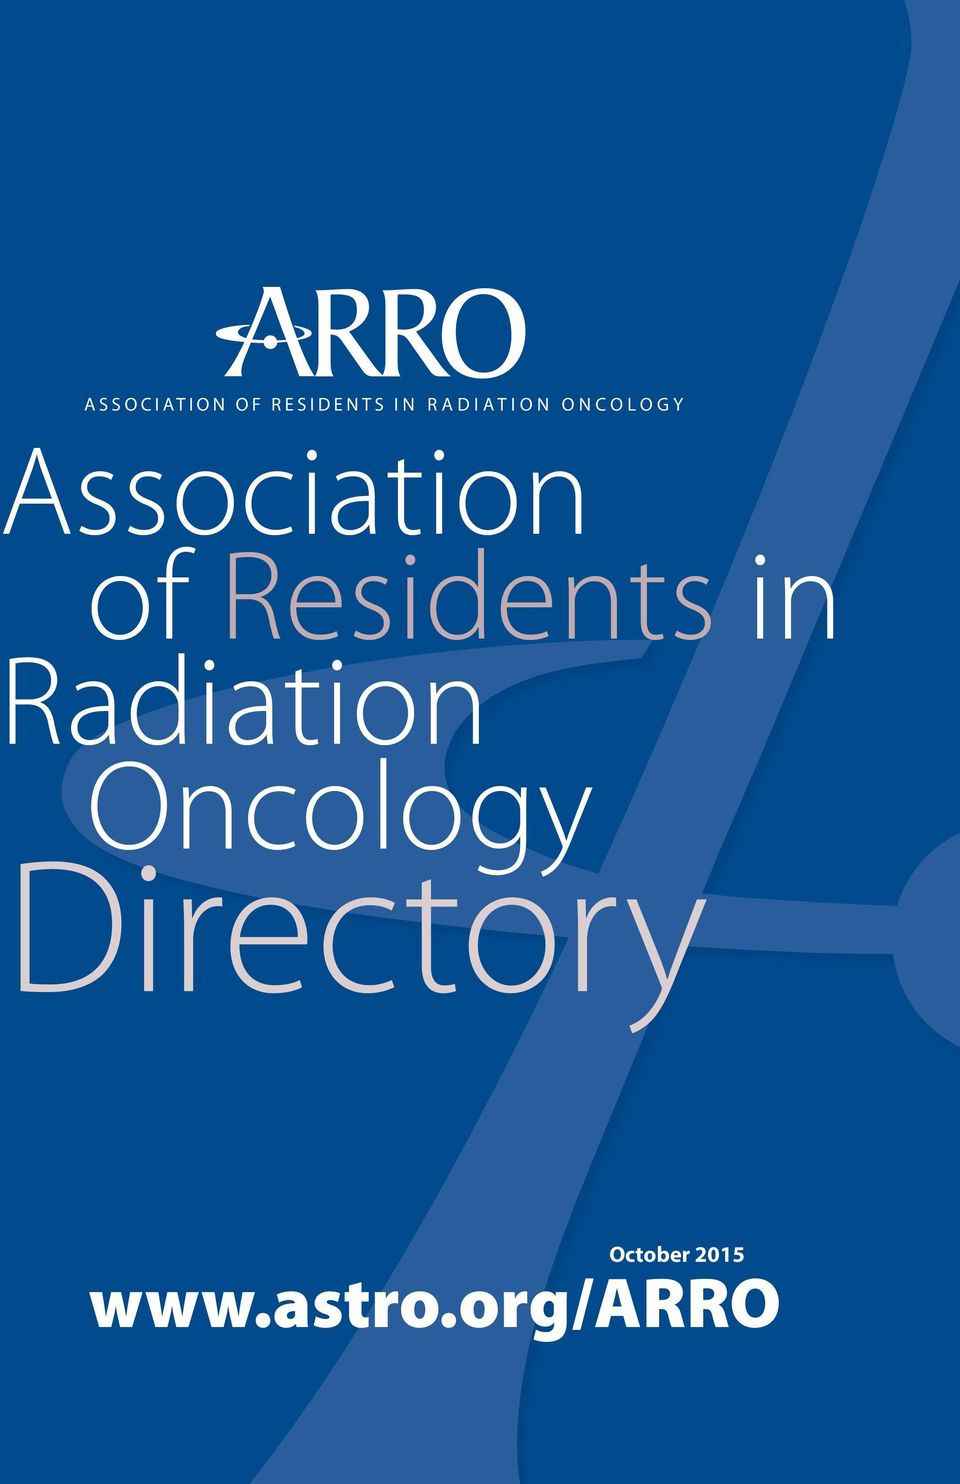 RRO ASSOCIATION OF RESIDENTS IN RADIATION ONCOLOGY